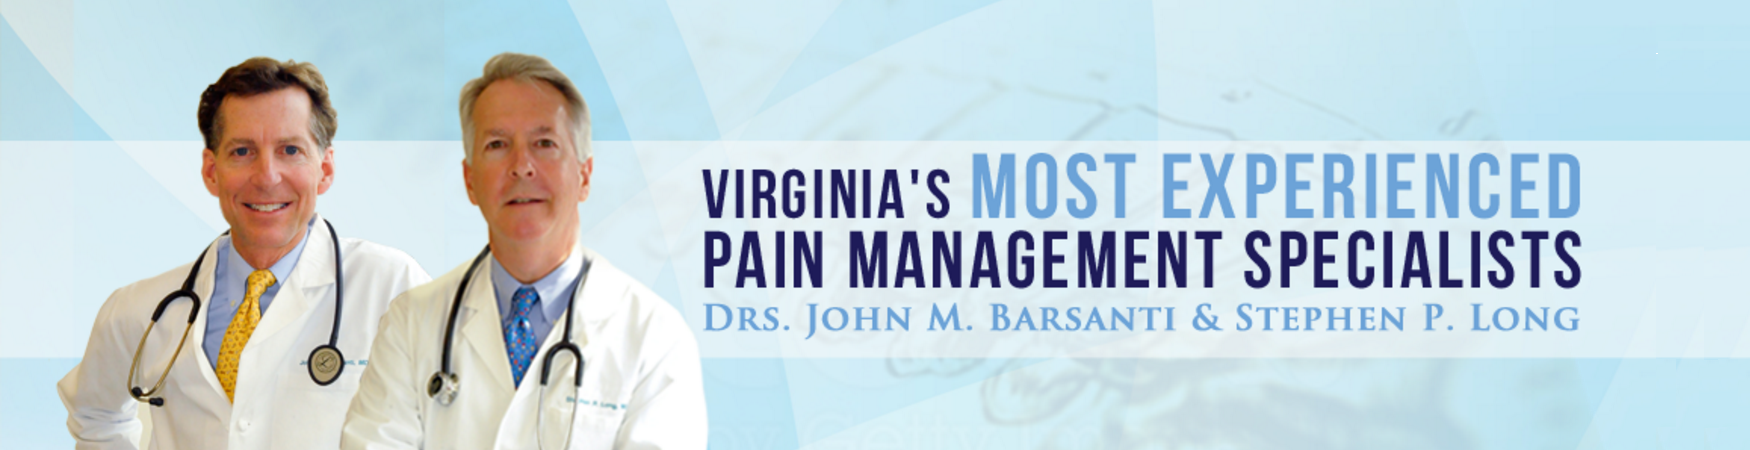 Commonwealth Spine and Pain Specialists reviews | 1501 Maple Ave #301 - Richmond VA